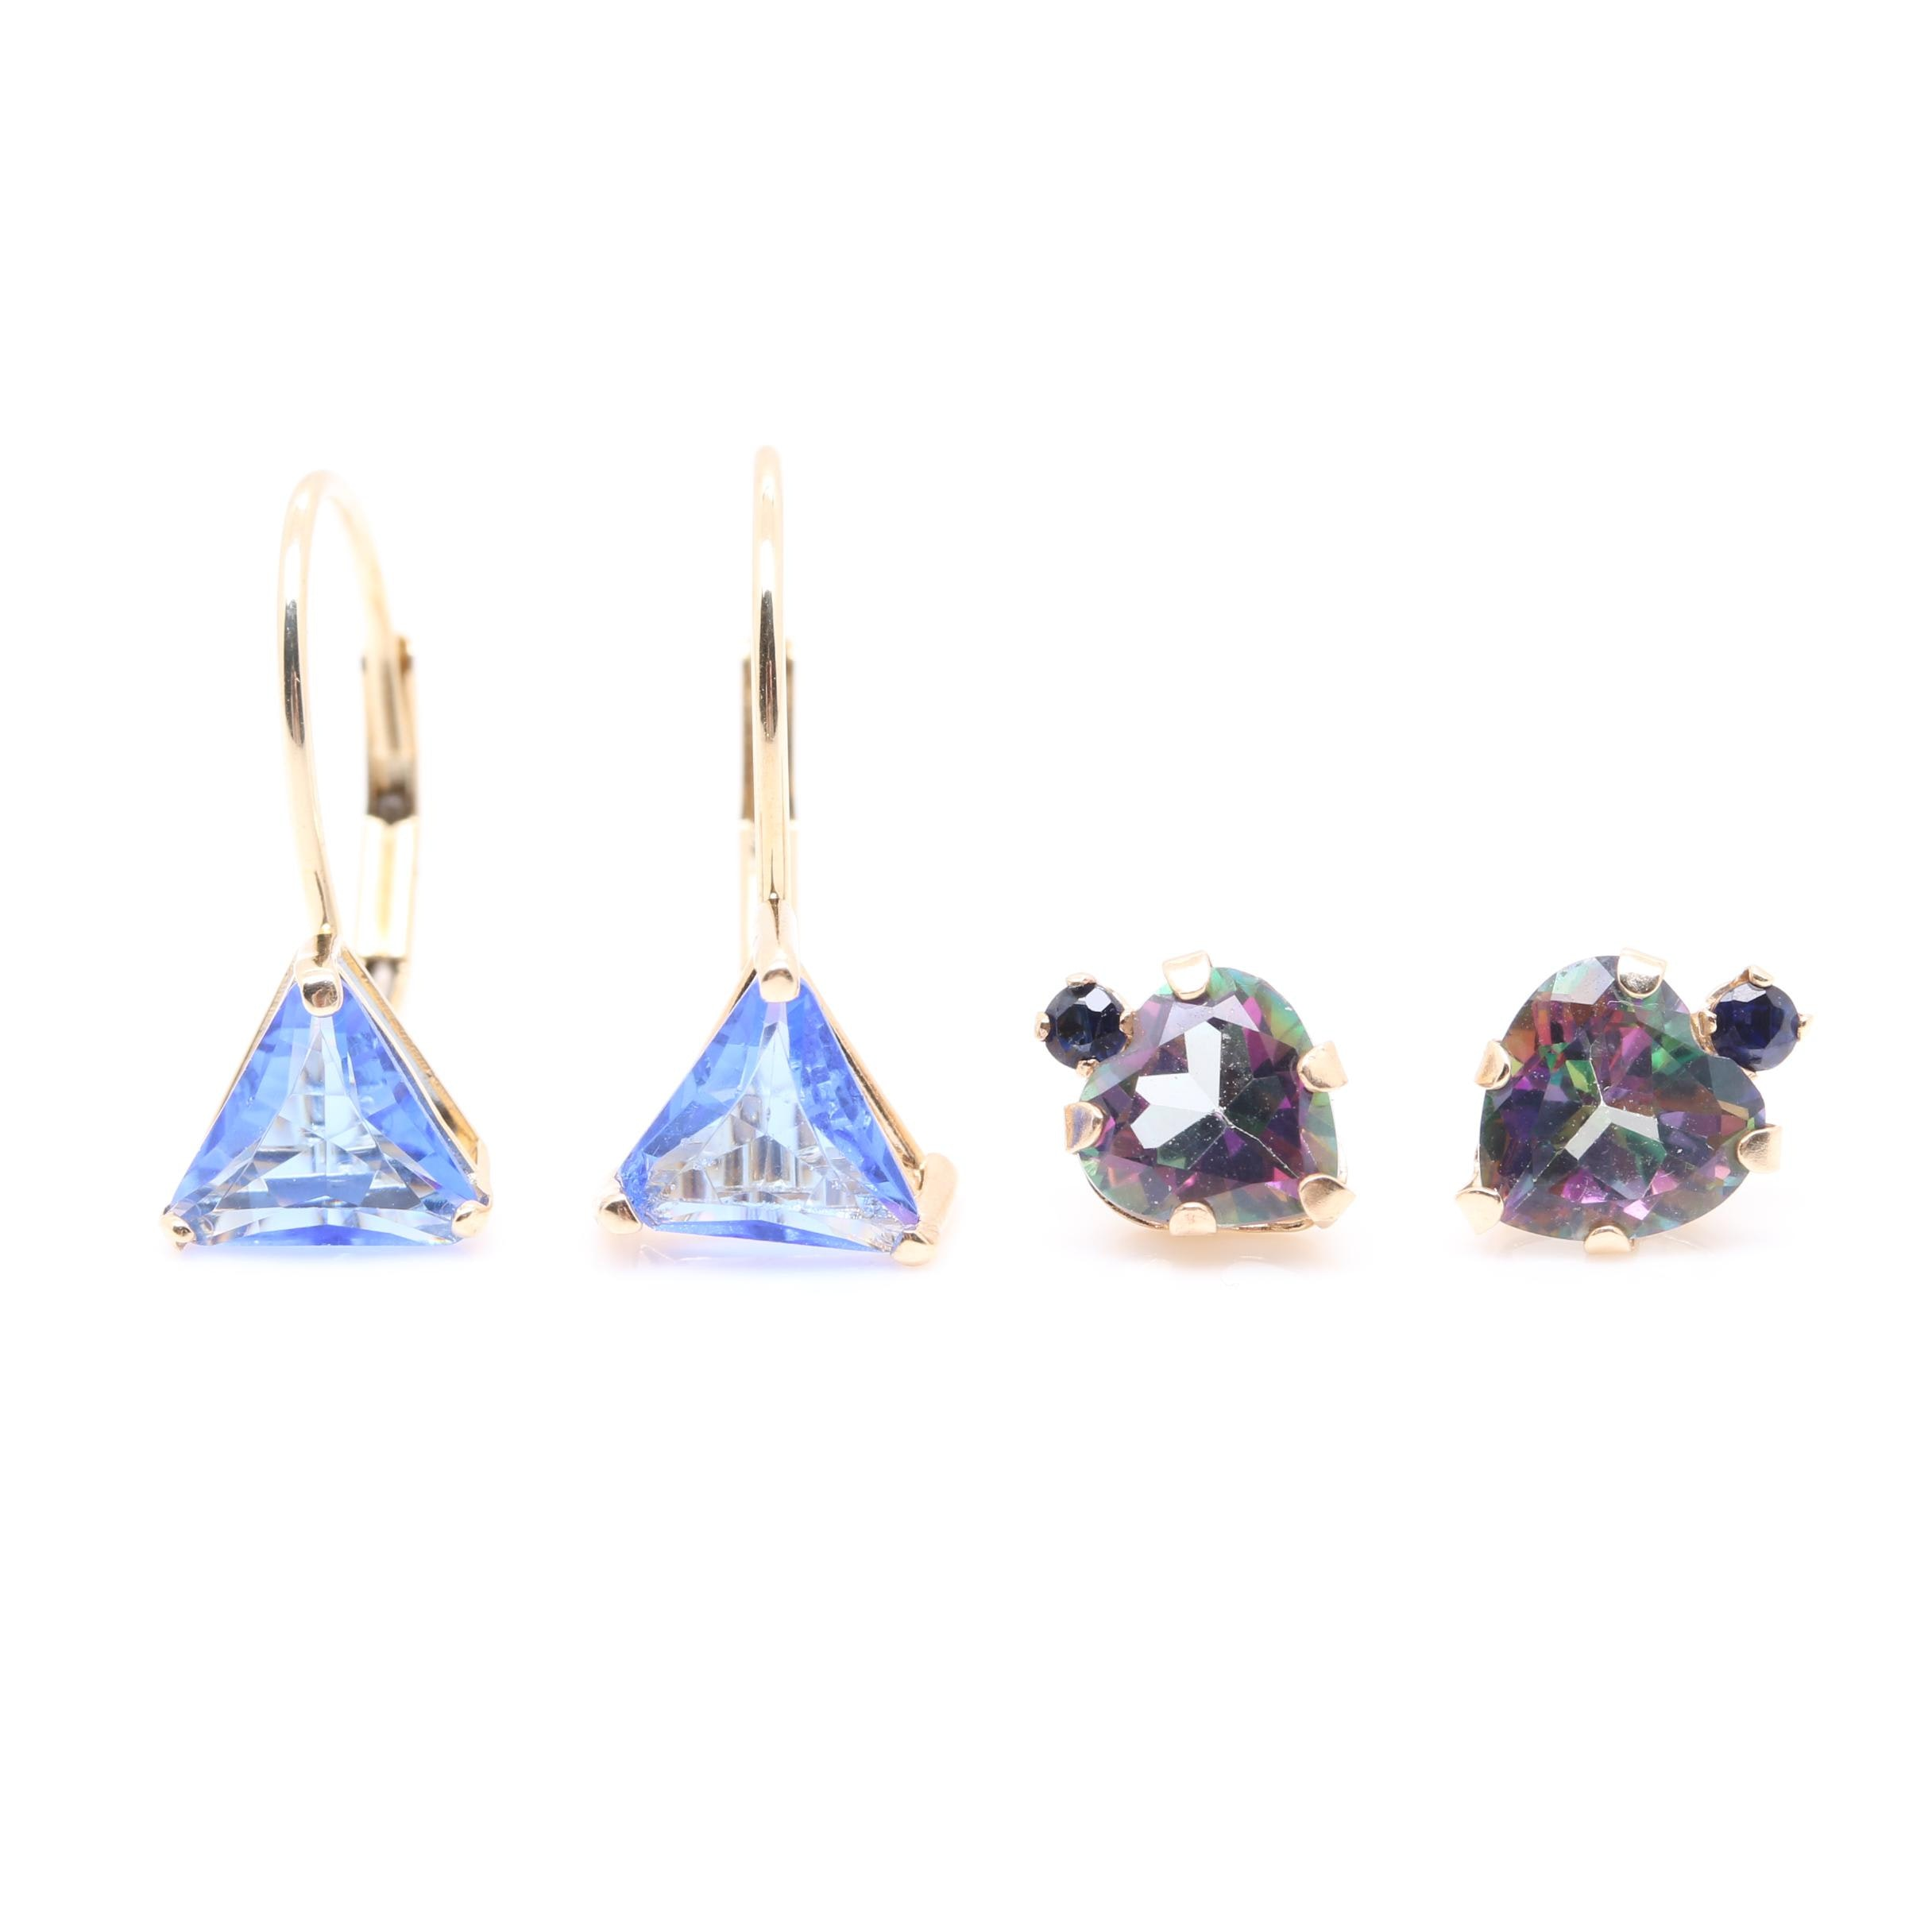 14K Yellow Gold Glass Earrings and 10K Yellow Gold Topaz and Sapphire Earrings